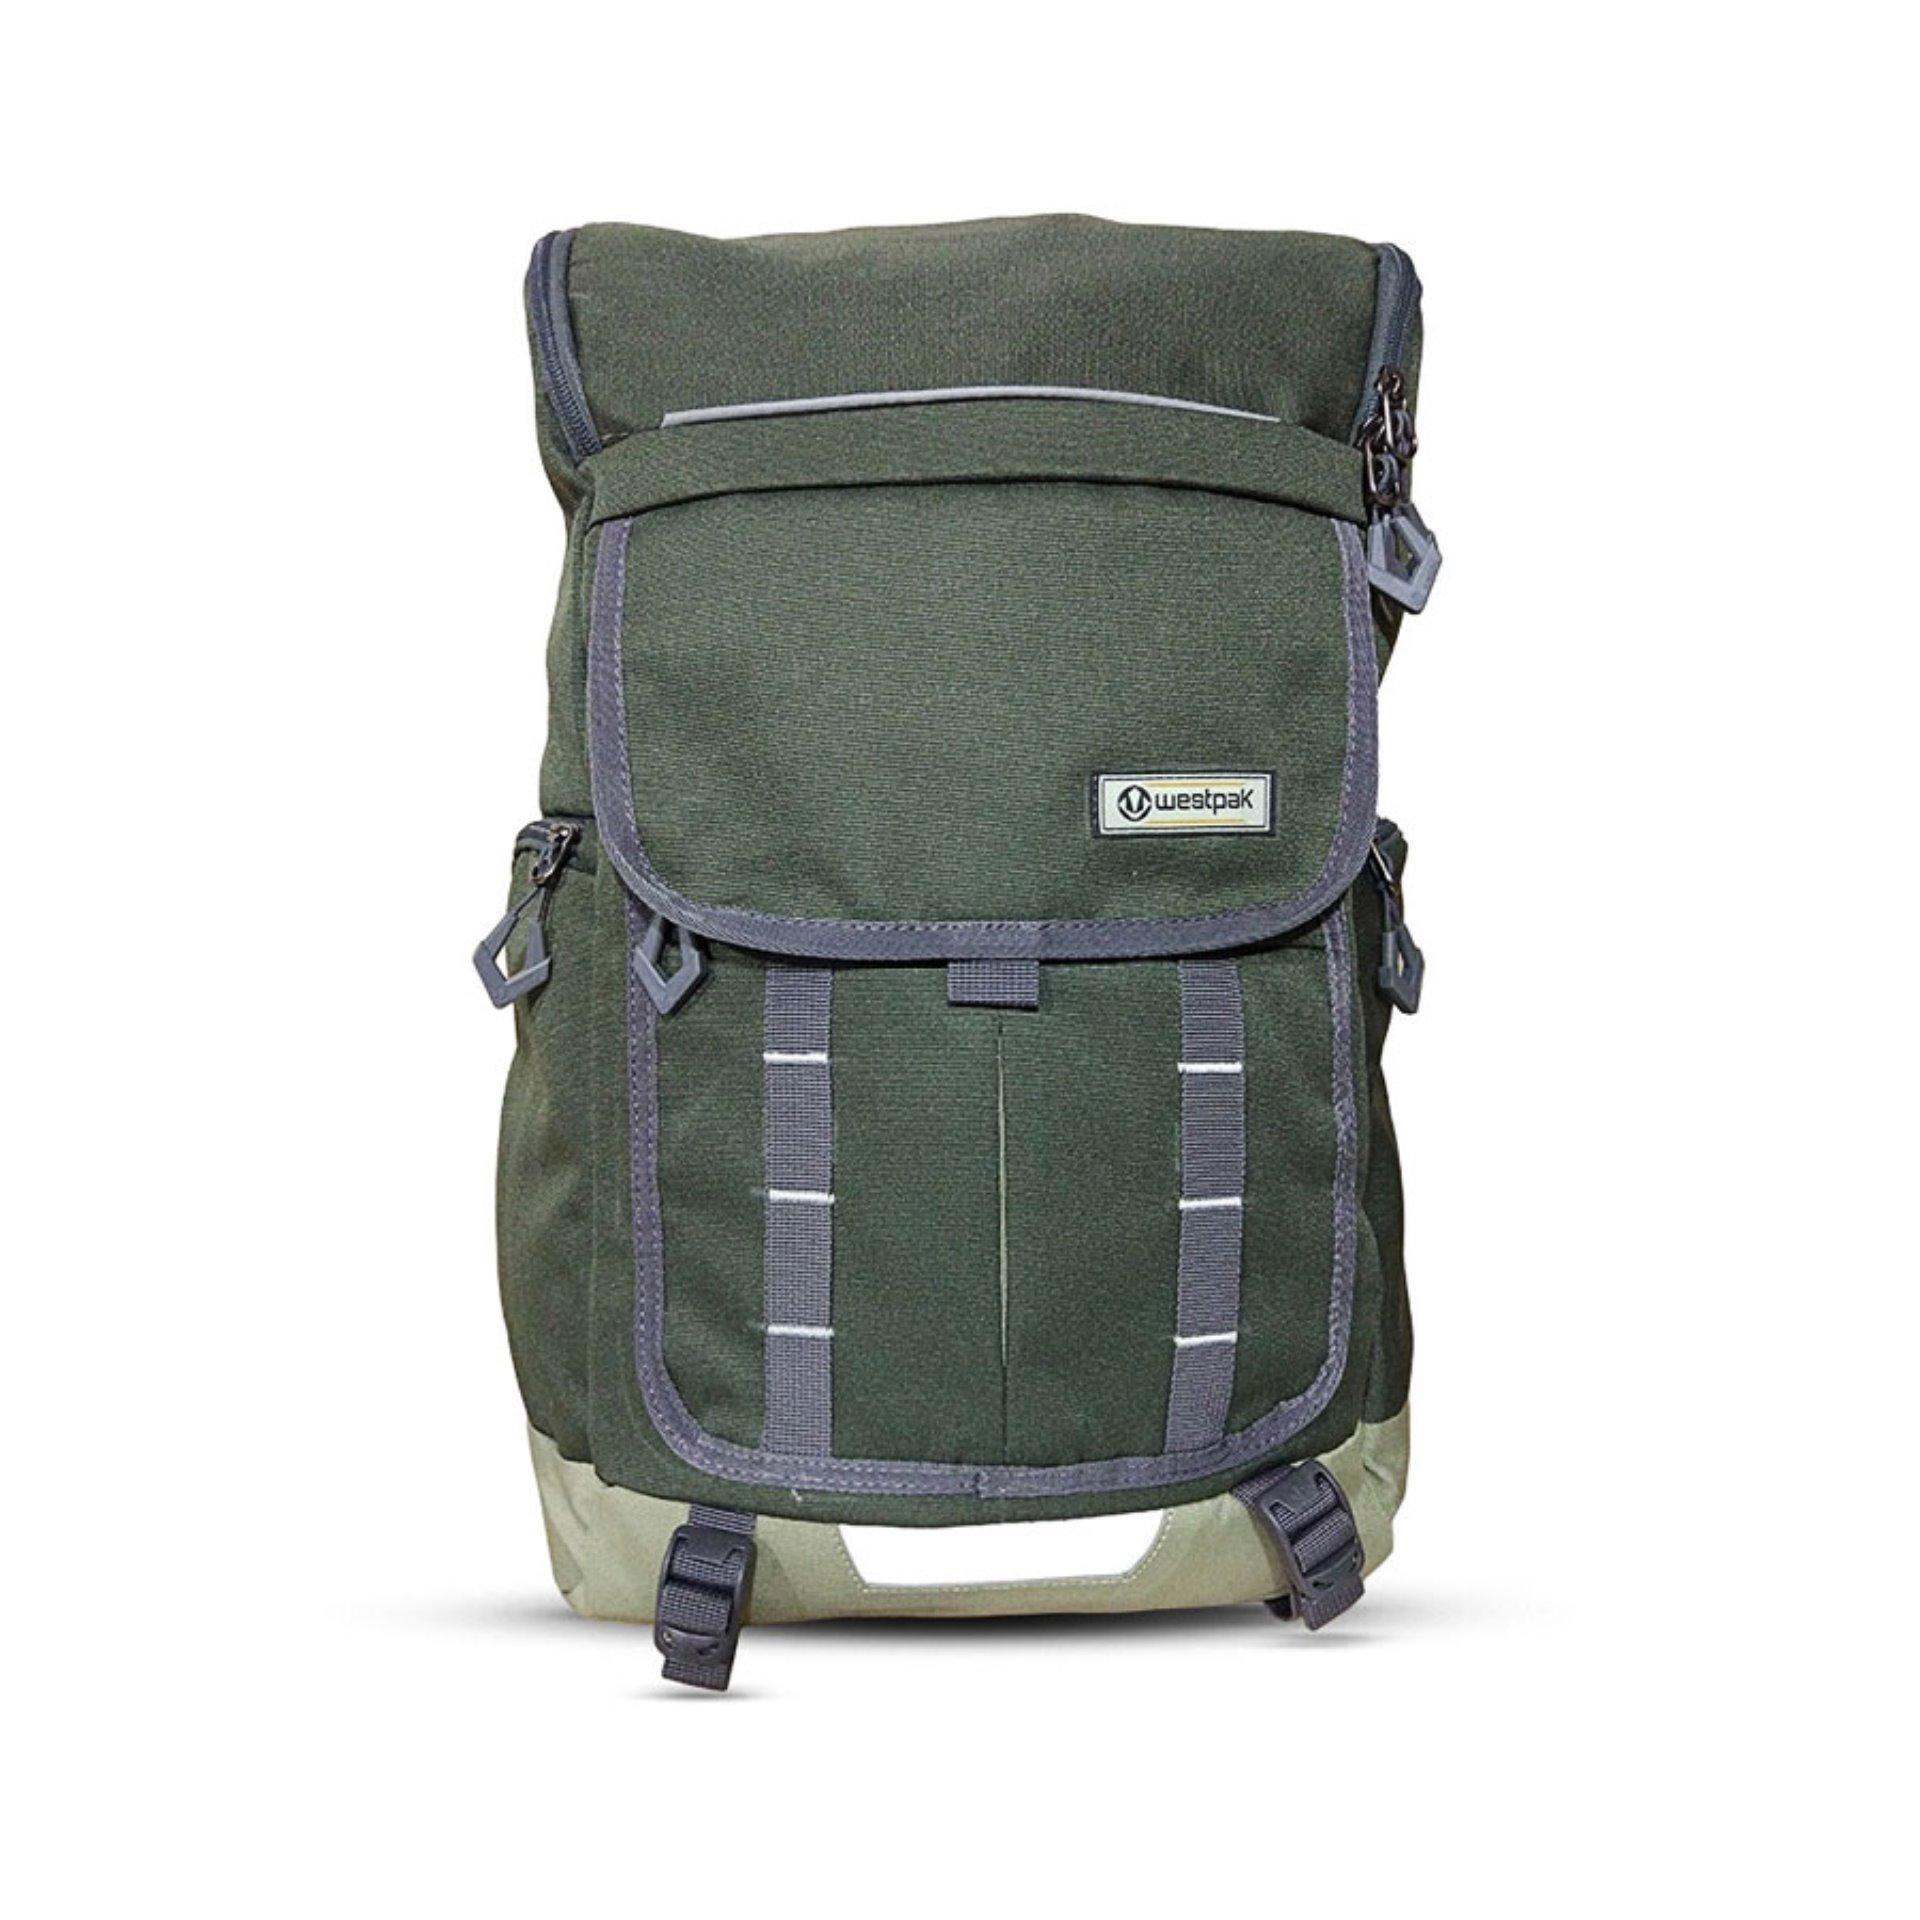 Westpak Bag - Tas Ransel Backpack Punggung Daypack Laptop Army Themes